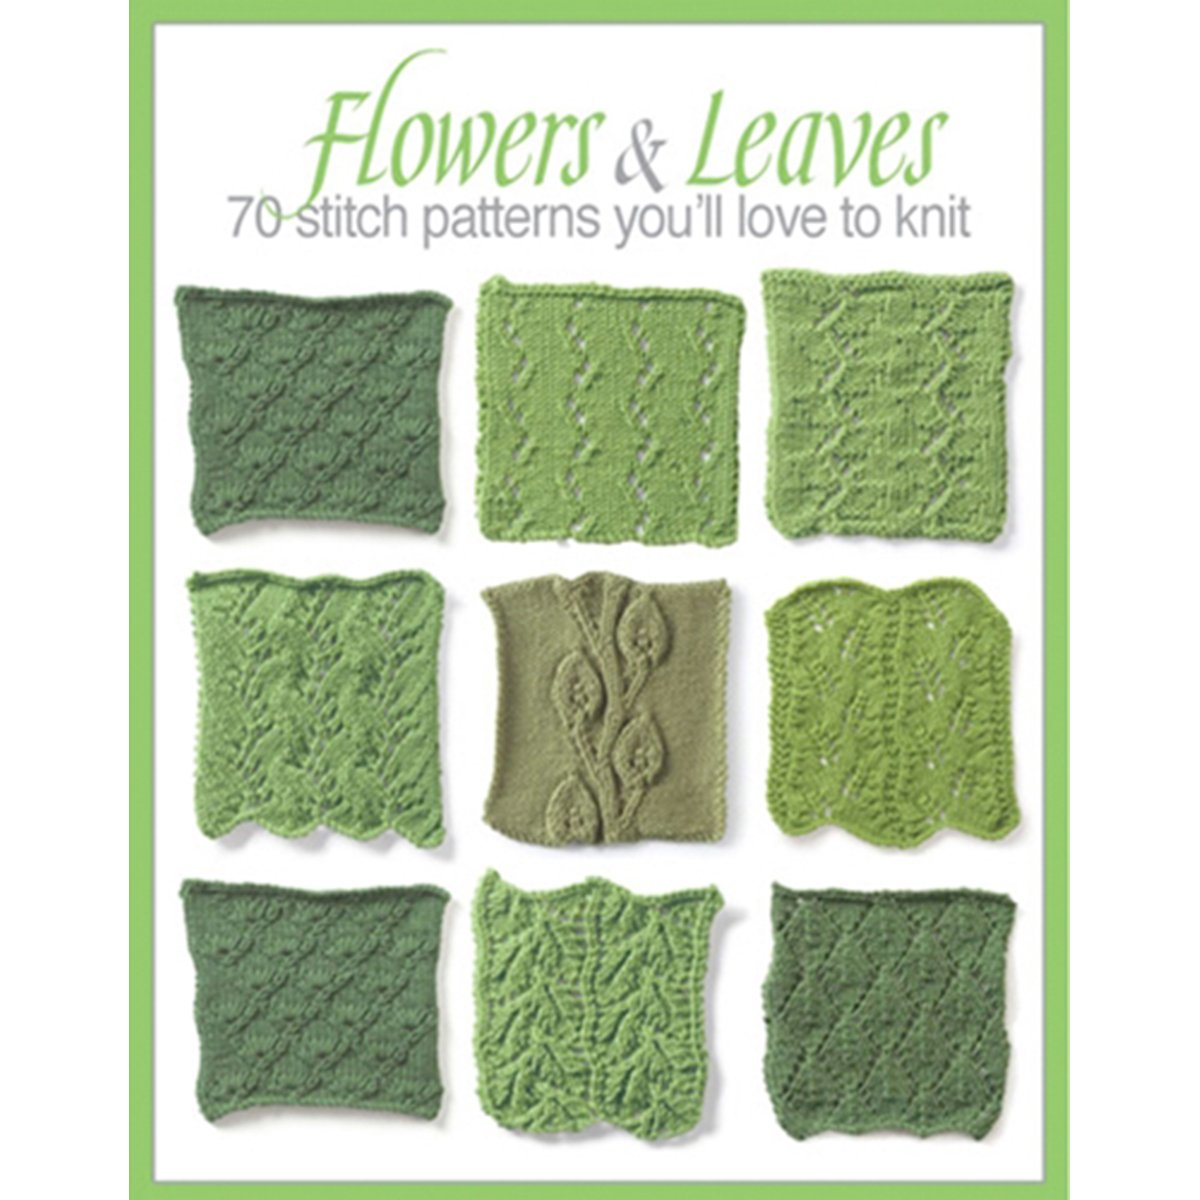 Flowers leaves 70 stitch patterns youll like to knit the flowers leaves 70 stitch patterns youll like to knit the editors of go crafty 9781938867590 amazon books bankloansurffo Images